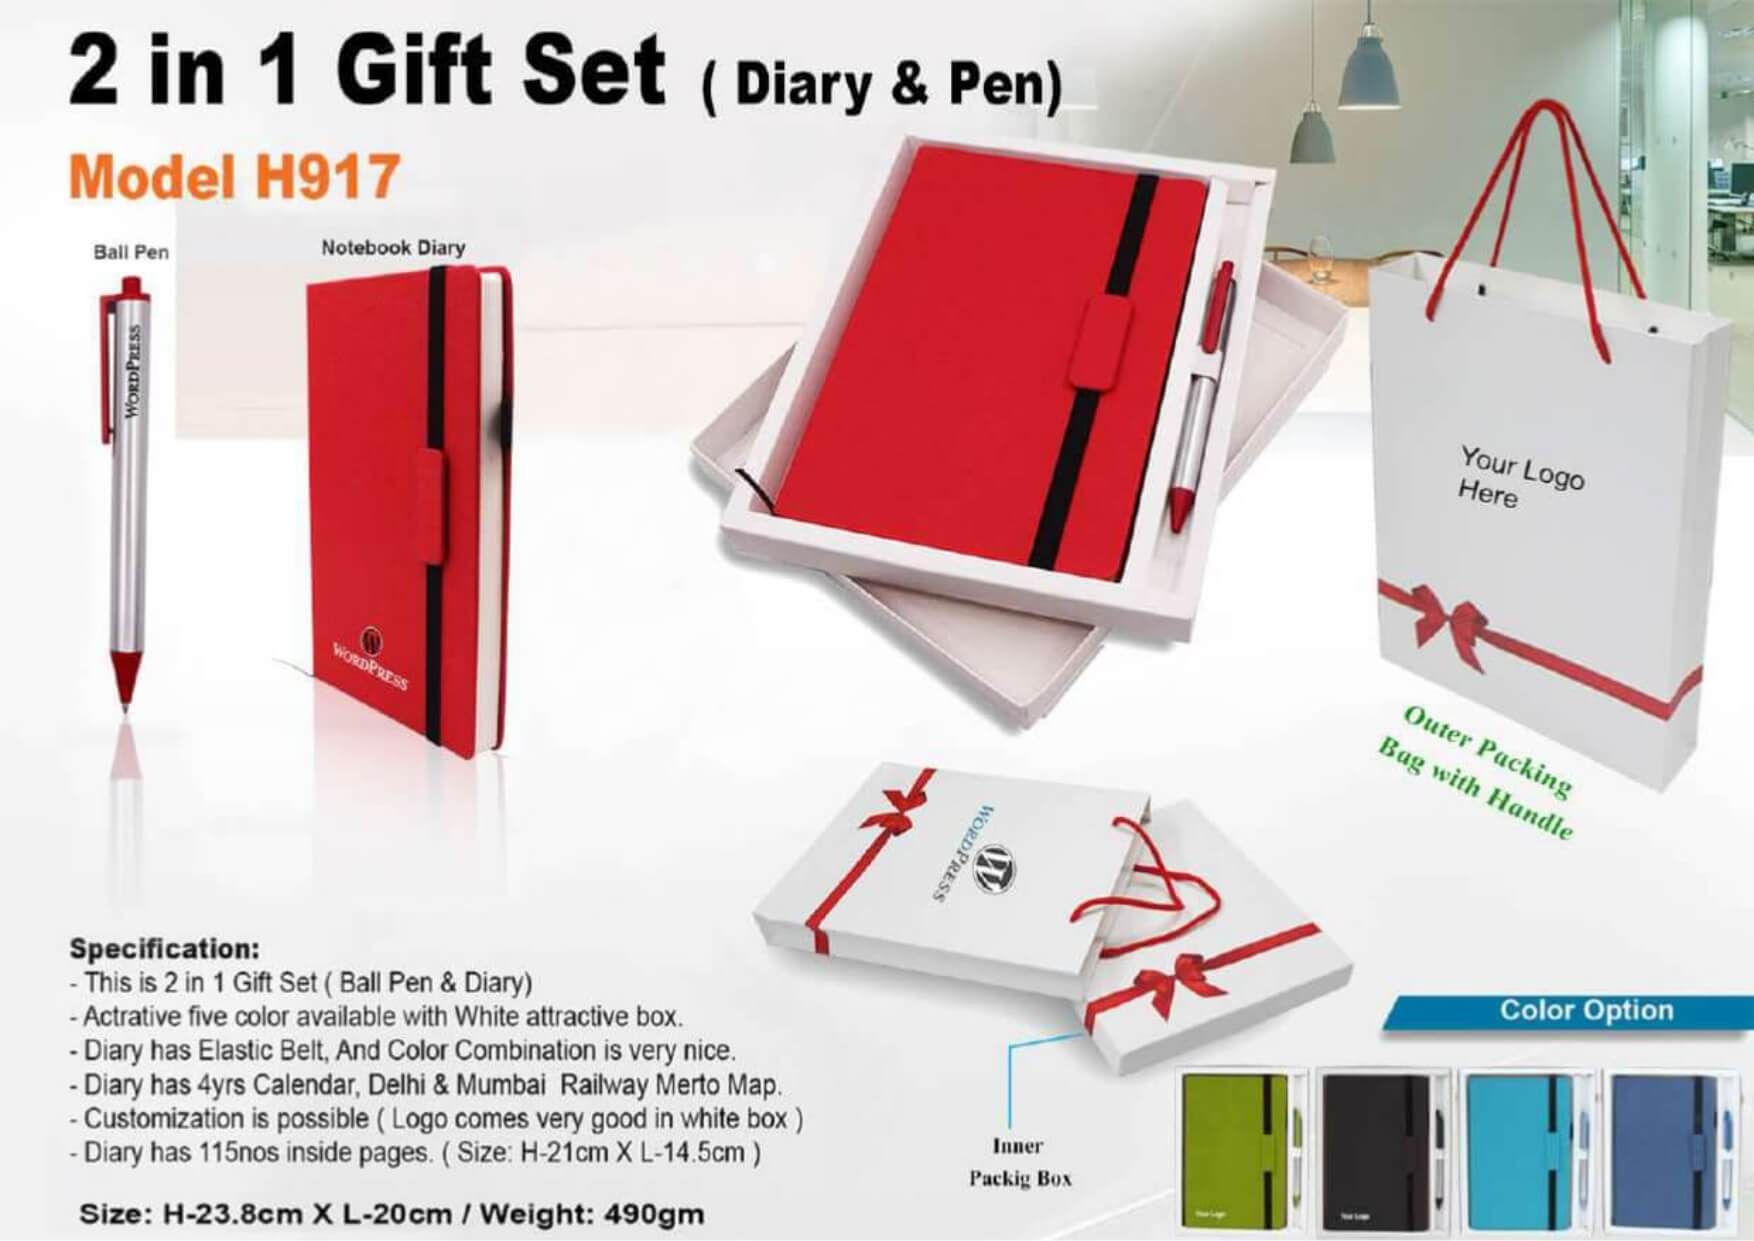 Diary and Pen 2 in 1 Gift Set 917